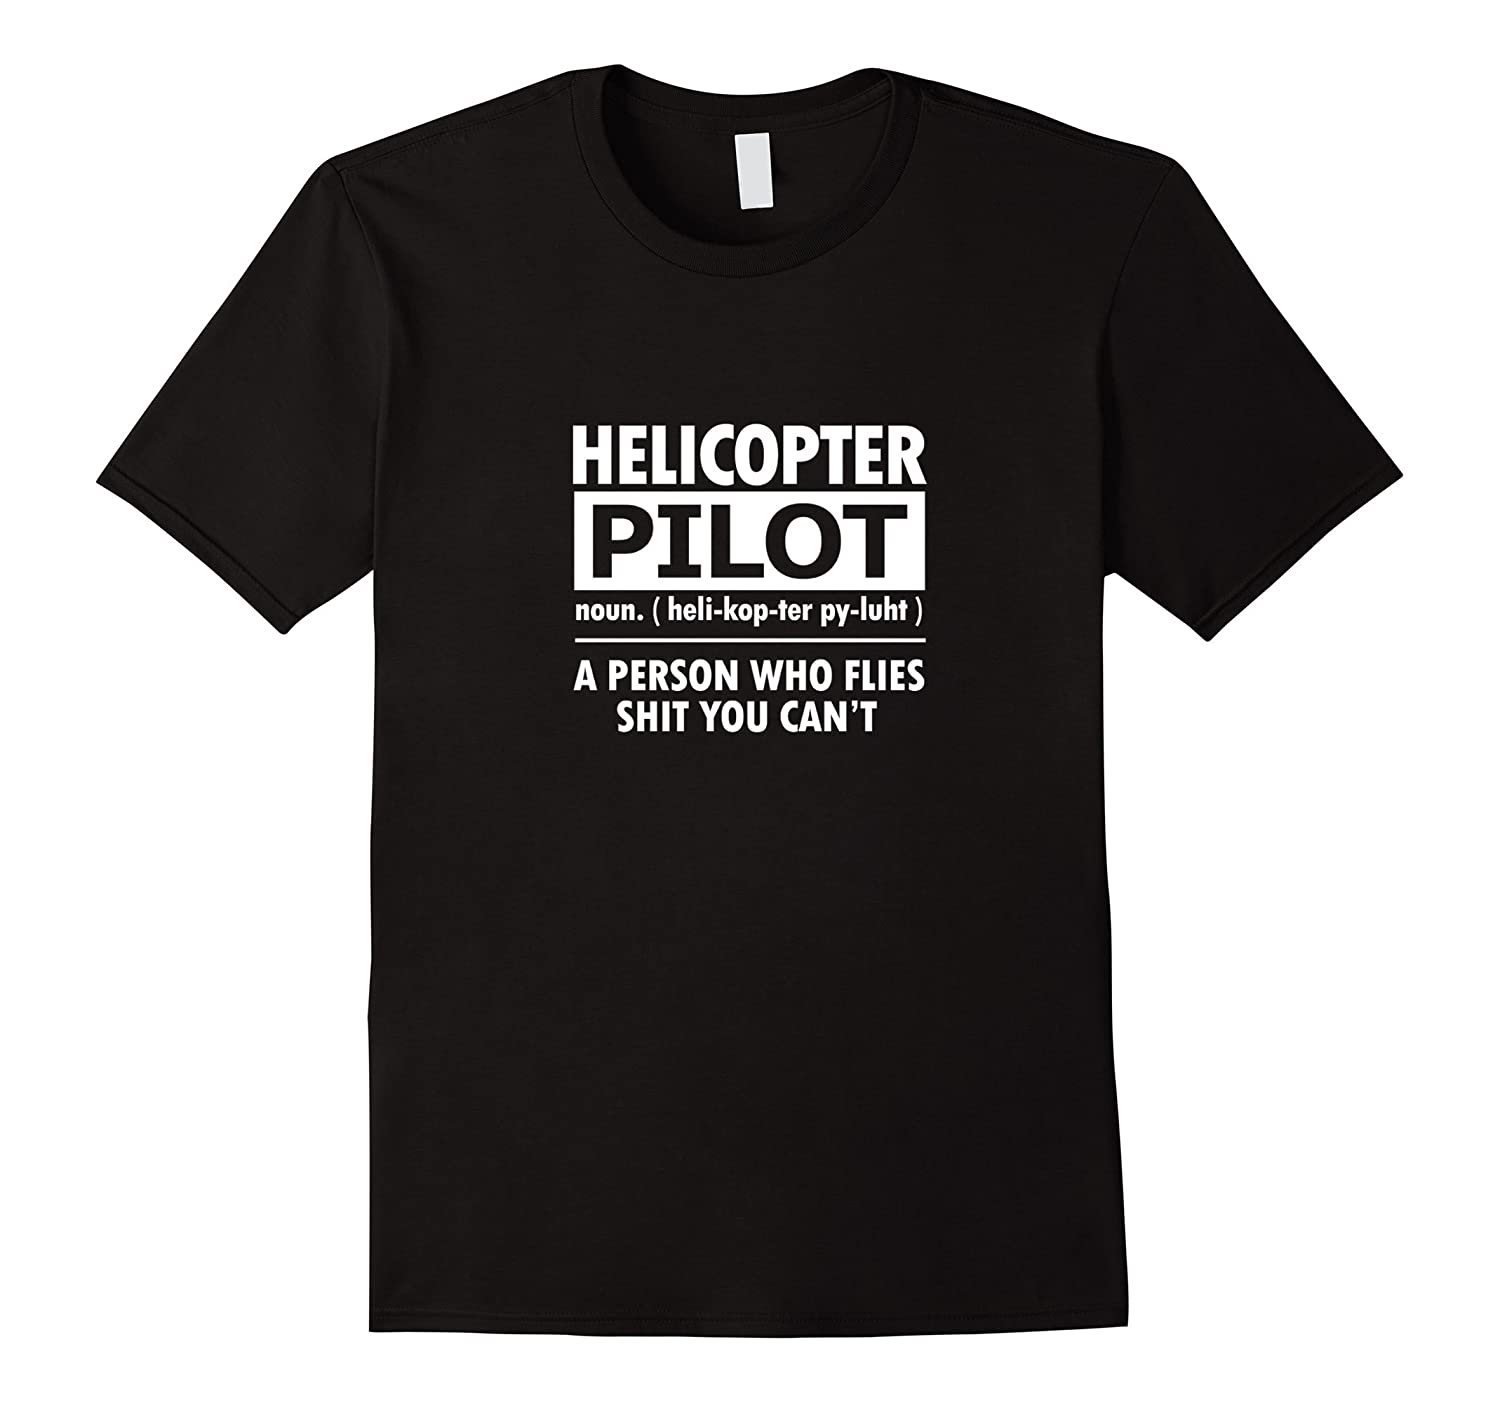 Funny Rotary Wing T-Shirt Definition Helicopter Pilot Shirt